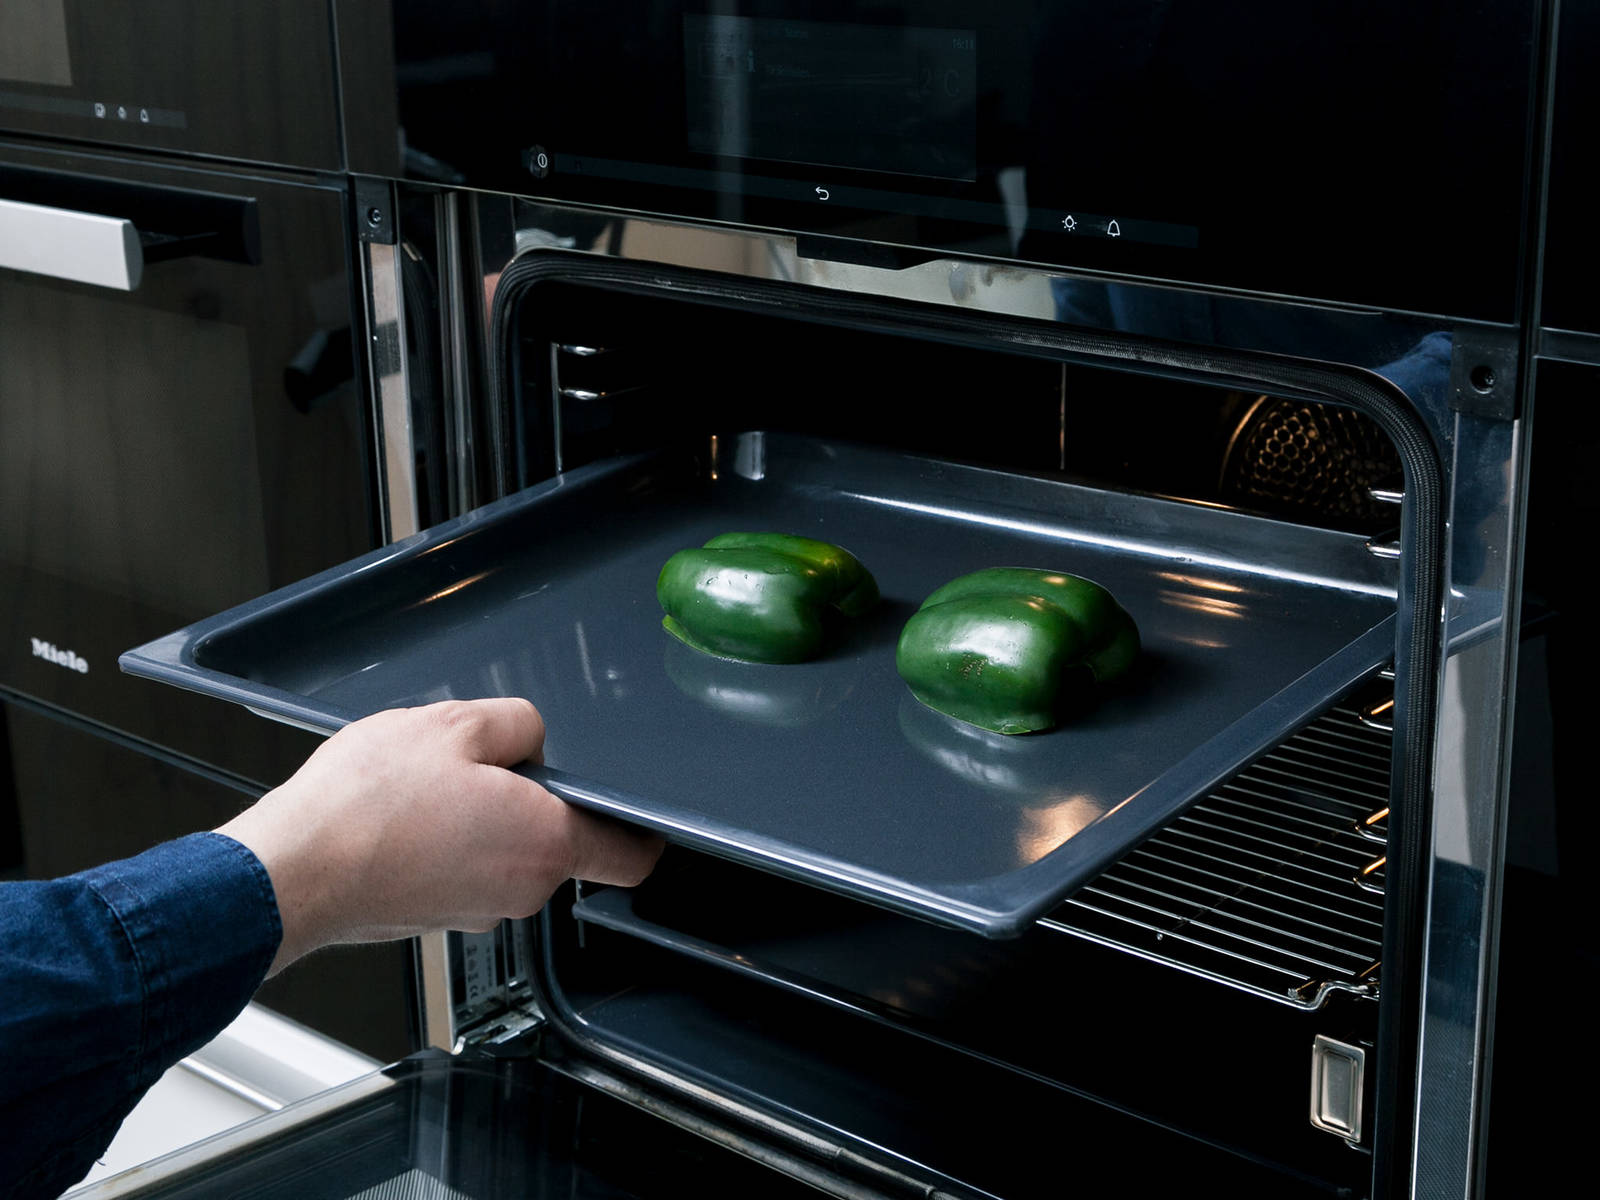 Pre-heat oven to 180°C/350°F. For the mojo verde, wash and halve bell pepper and chili. Core the bell pepper and lay it onto a baking sheet. Bake in oven for approx. 25 min. Remove from oven, let cool, and remove the skin.